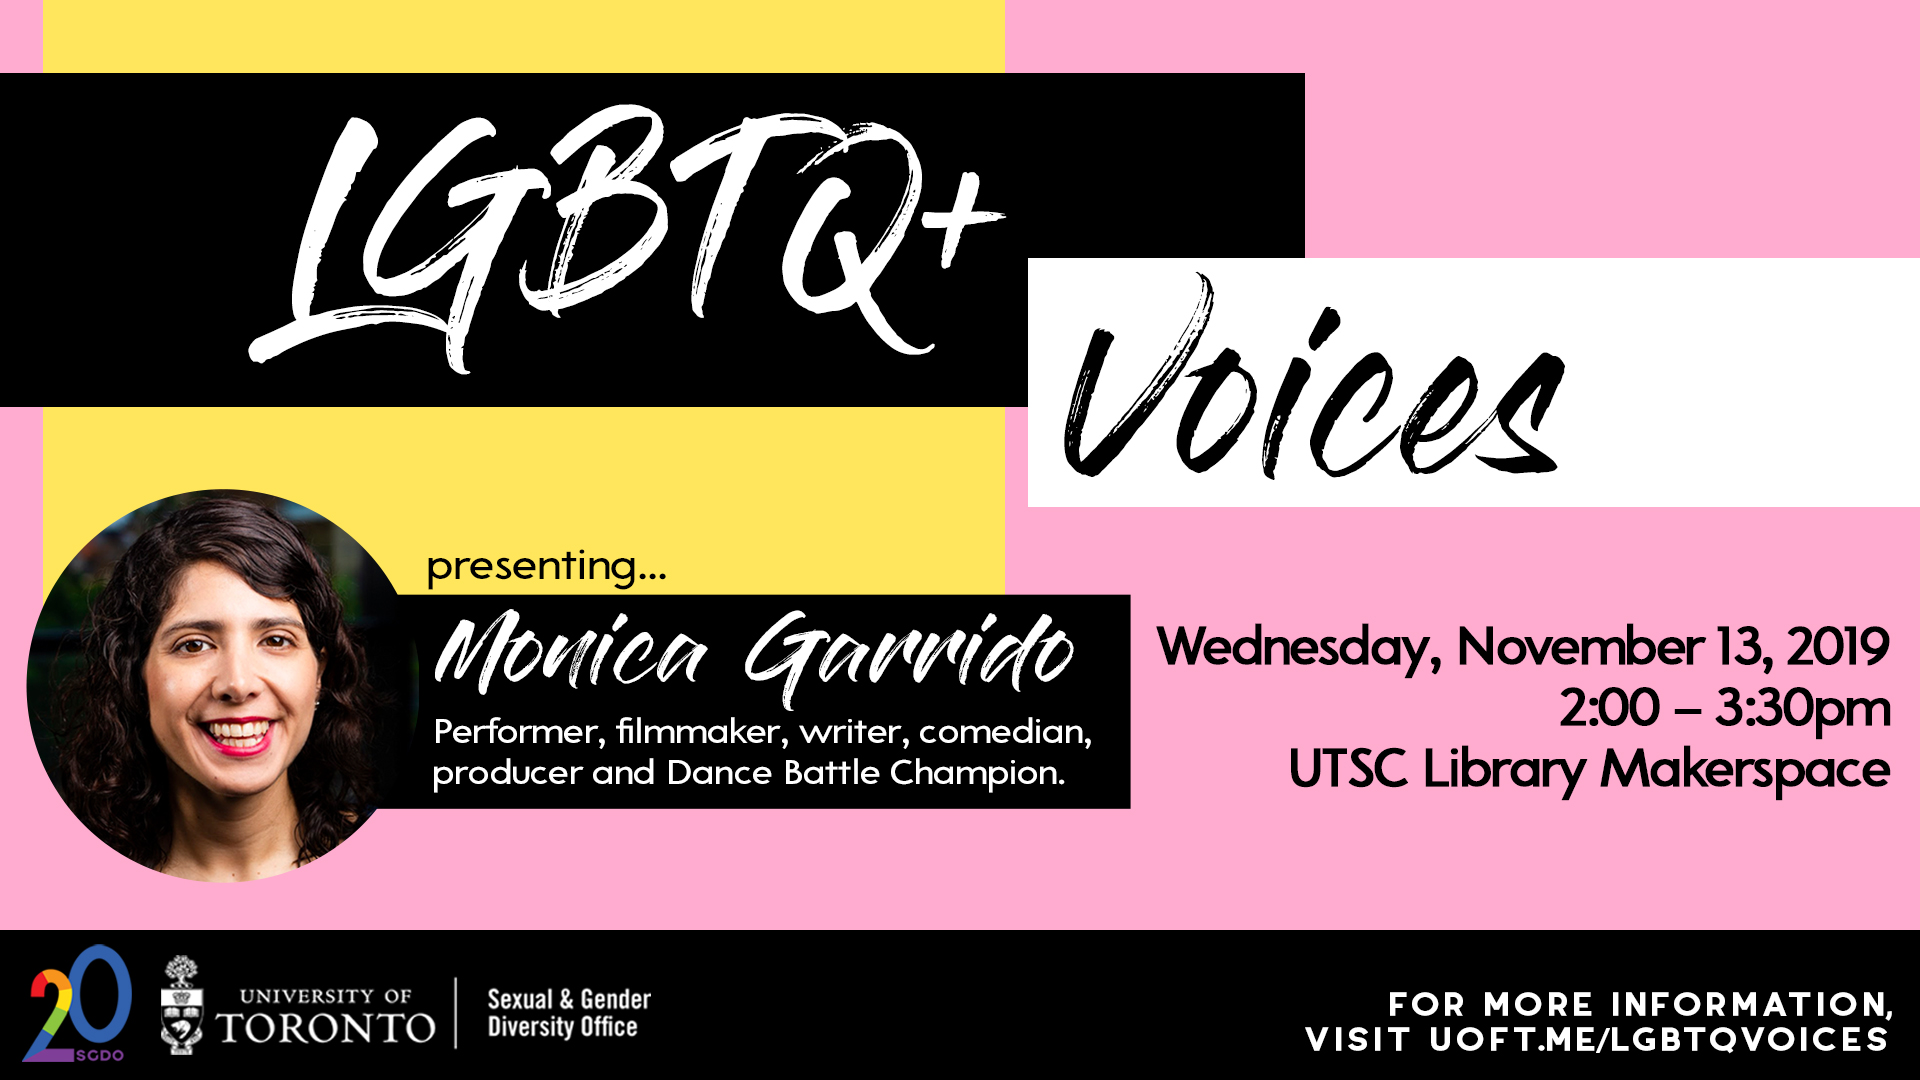 November 13 LGBTQ+ Voices event featuring the work of Monica Garrido